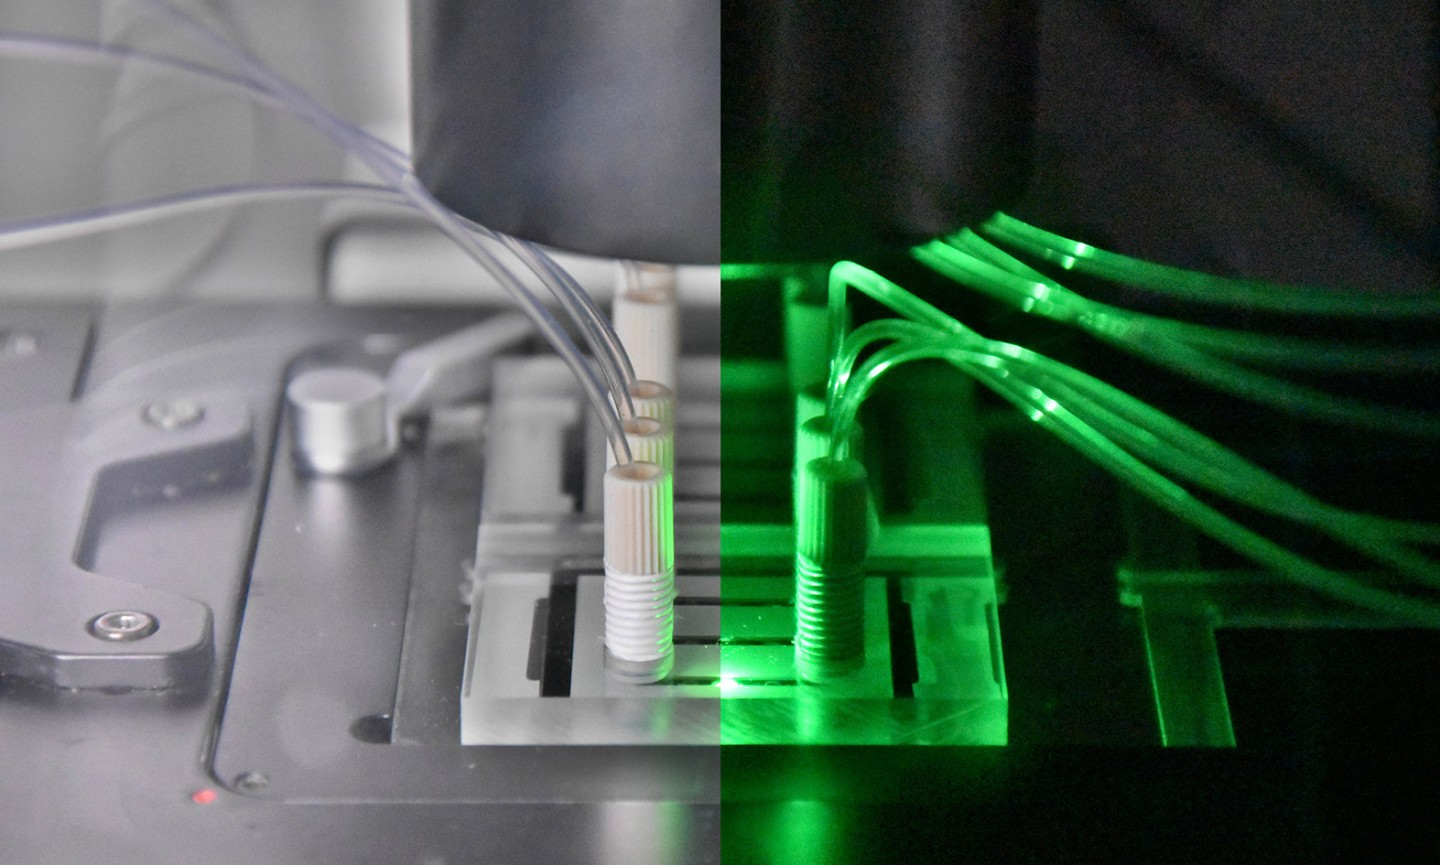 Microfluidic bioreactors for in-vitro toxicity measurements (Liver-on-a-Chip)